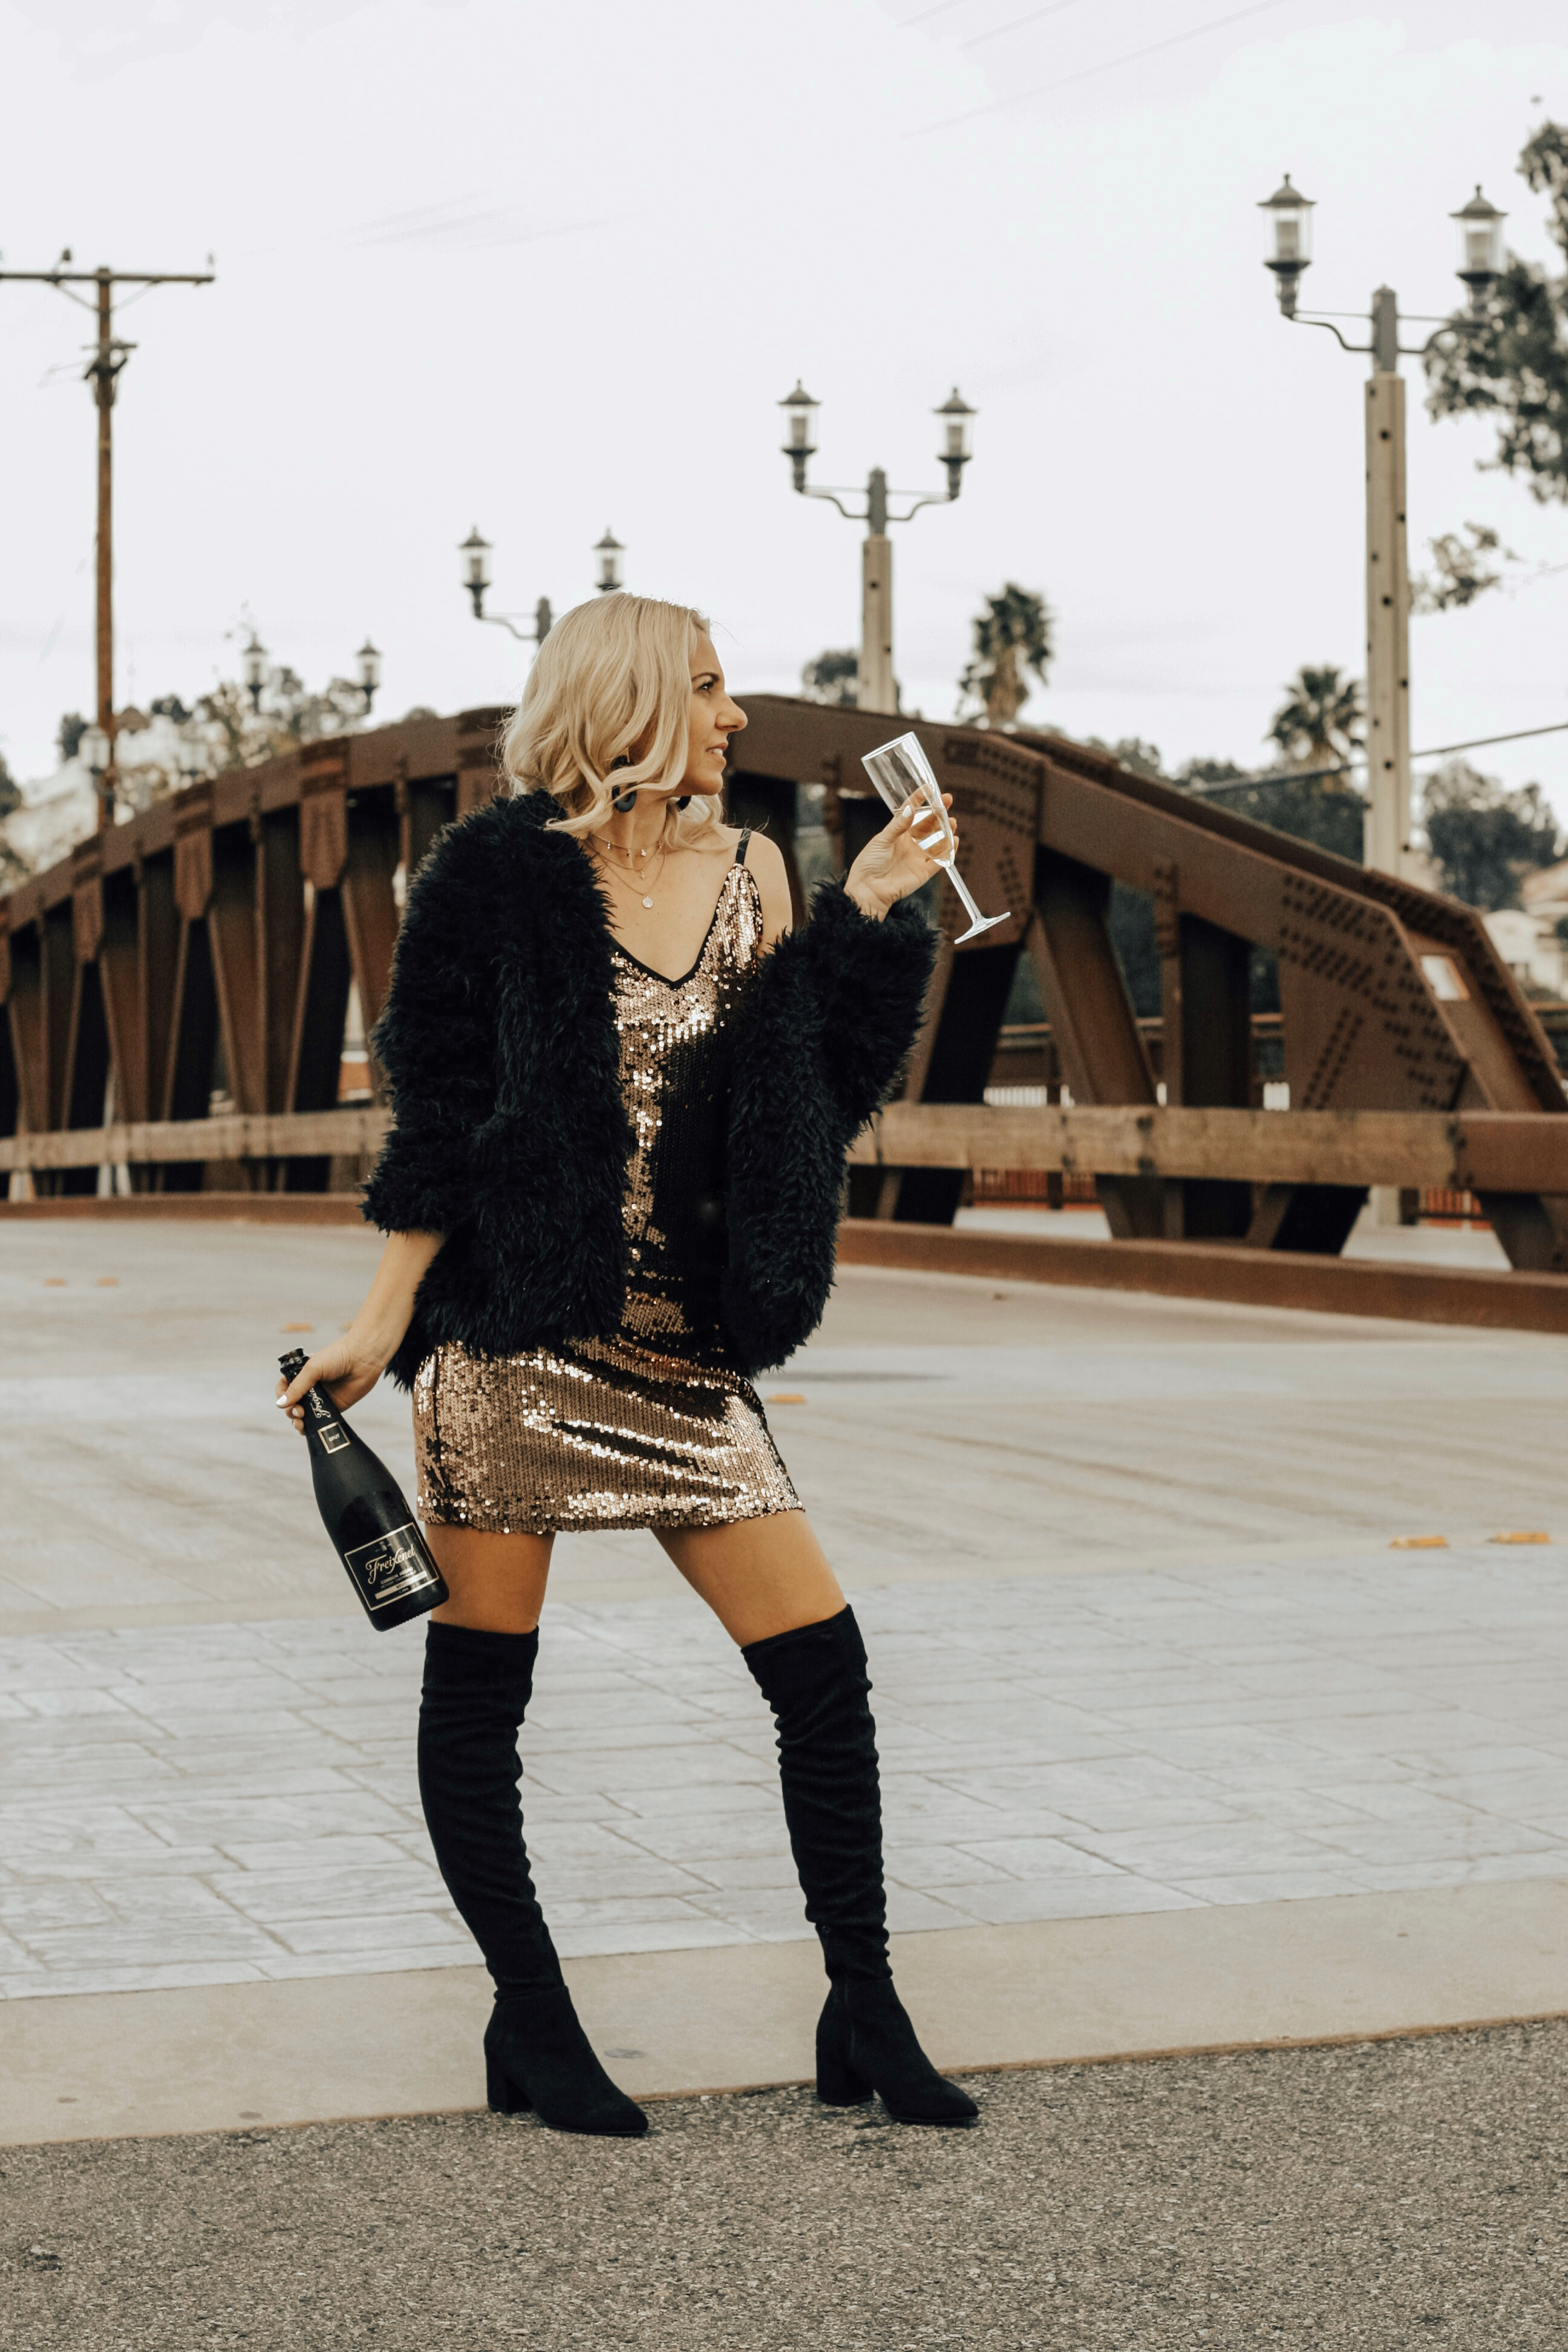 NYE PARTY LOOKS- Jaclyn De Leon Style + New Years Eve party dress + champagne + celebrate + street style + party outfit + sequin dress + cocktail dress + winter style + OTK boots + target style + affordable fashion + mom style + cozy faux fur jacket + mini dress